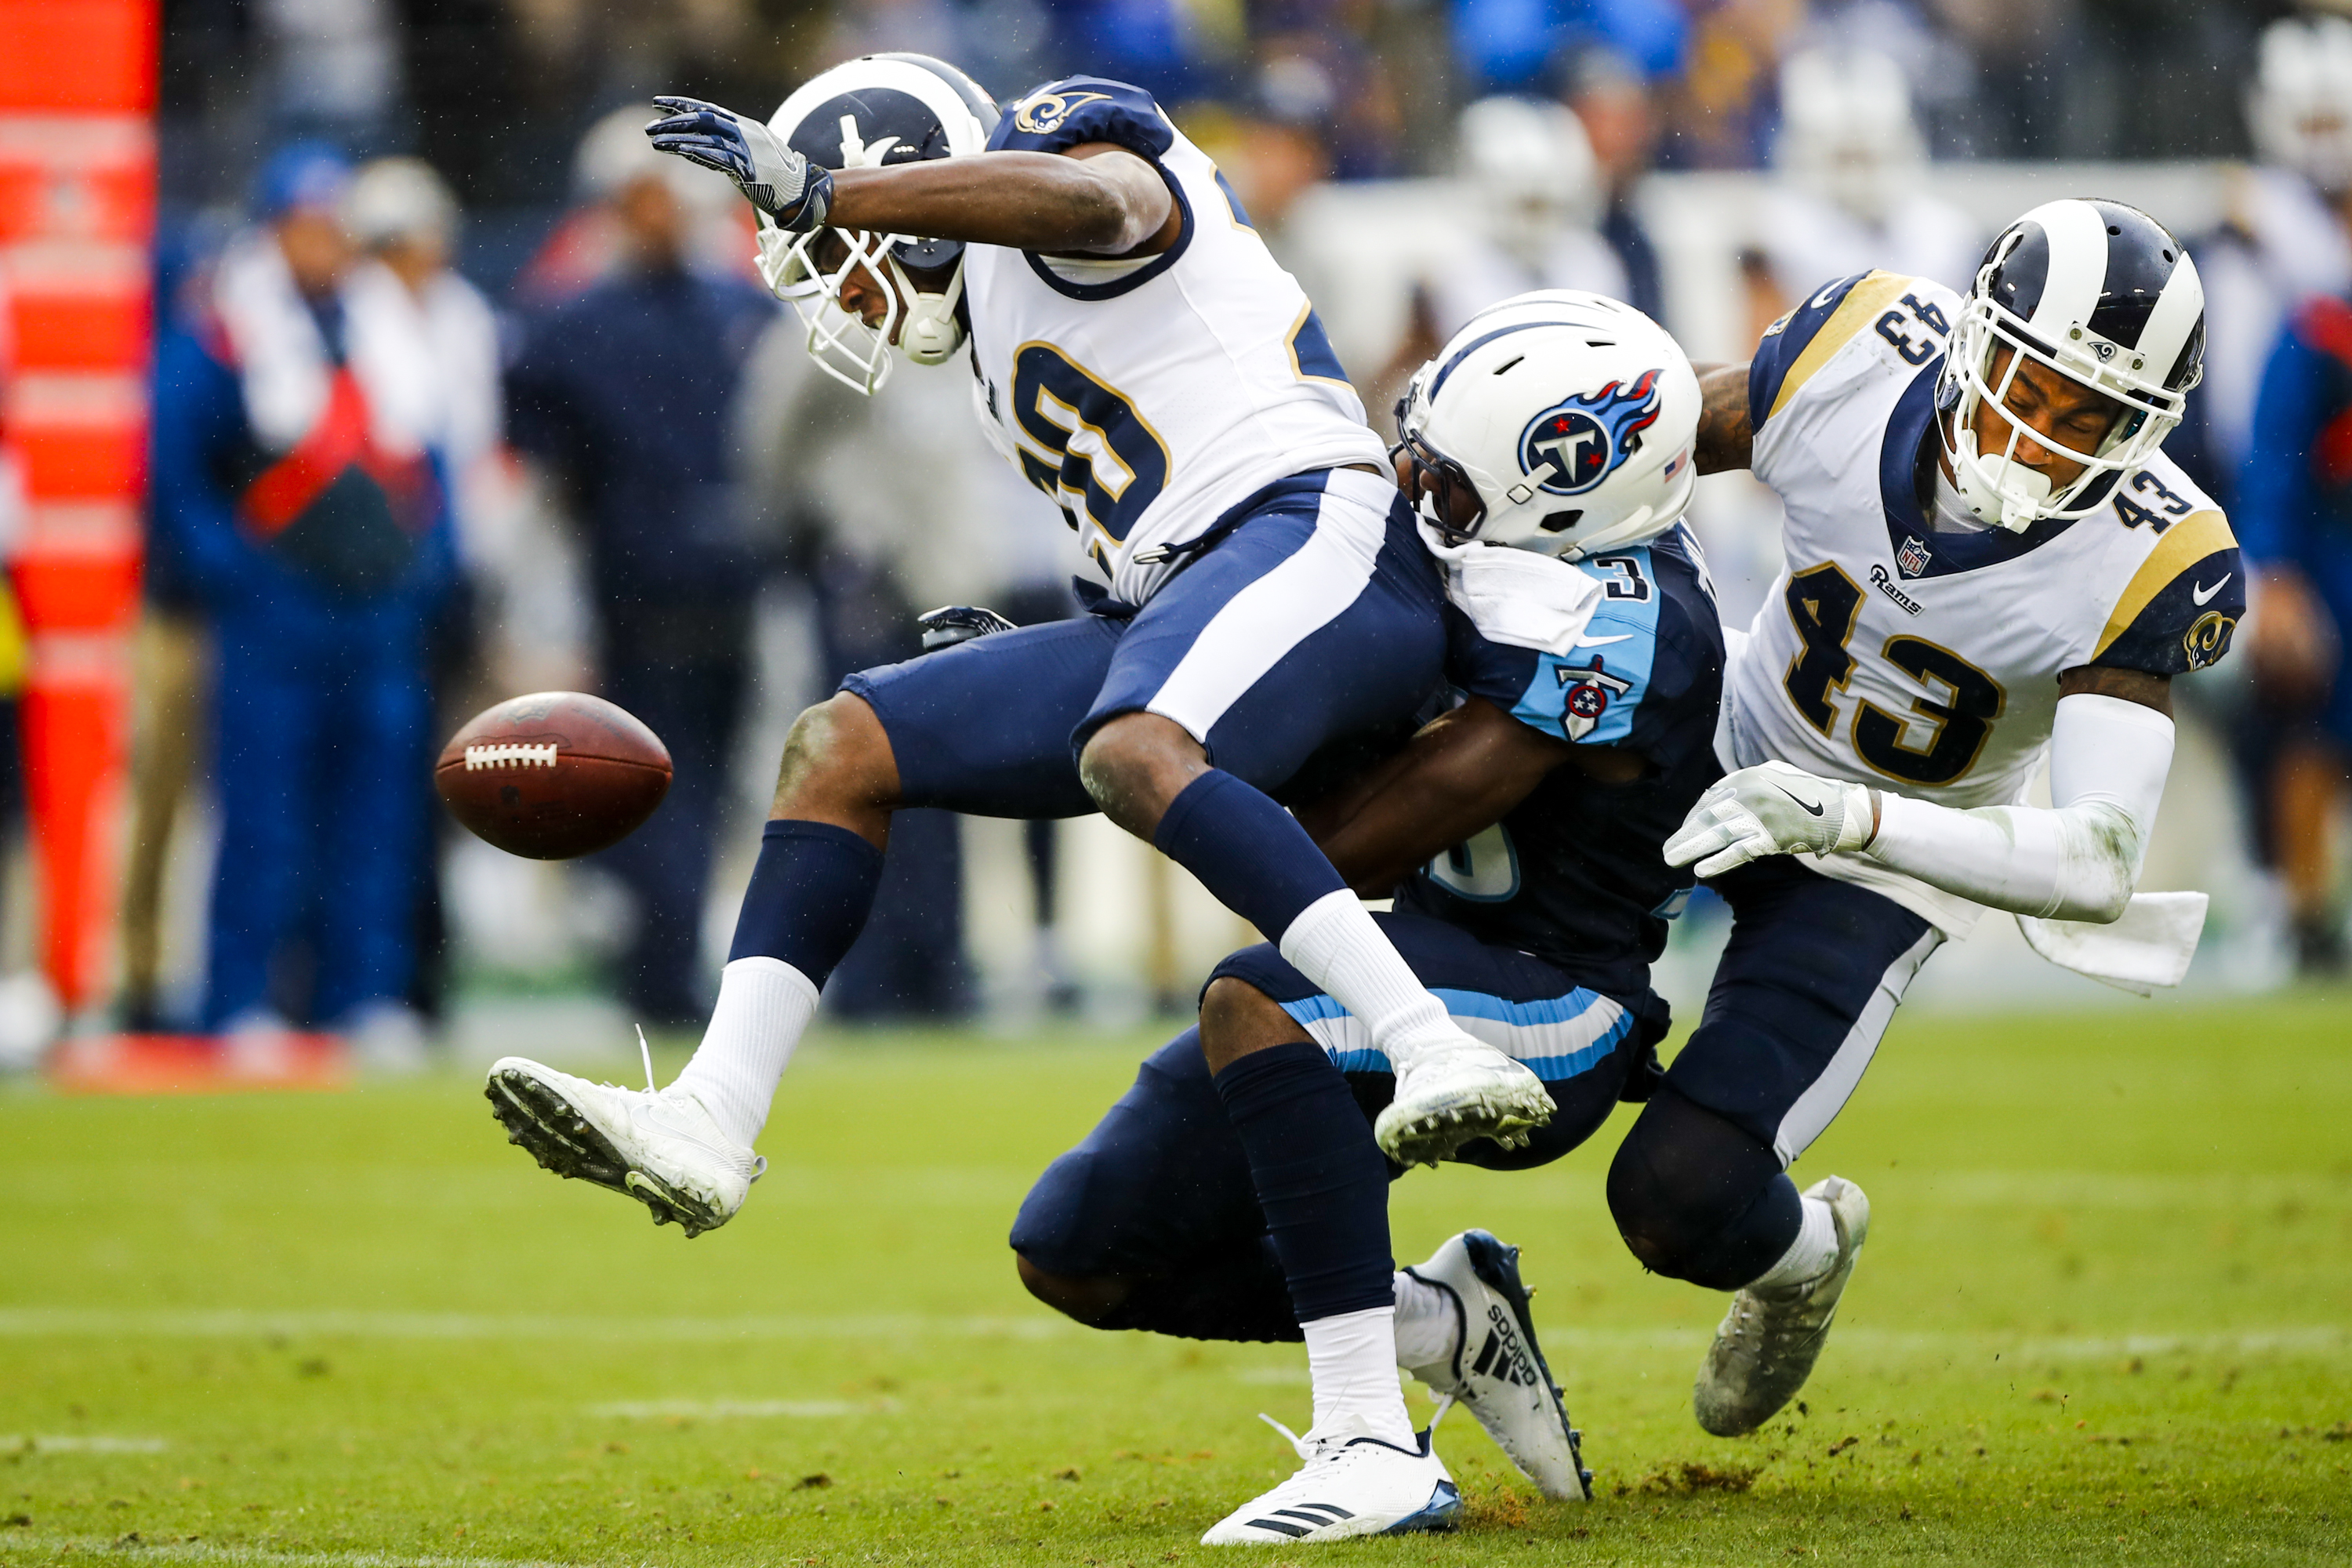 A pass to Tennessee Titans WR Taywan Taylor is broken up by Los Angeles Rams S Lamarcus Joyner & S John Johnson